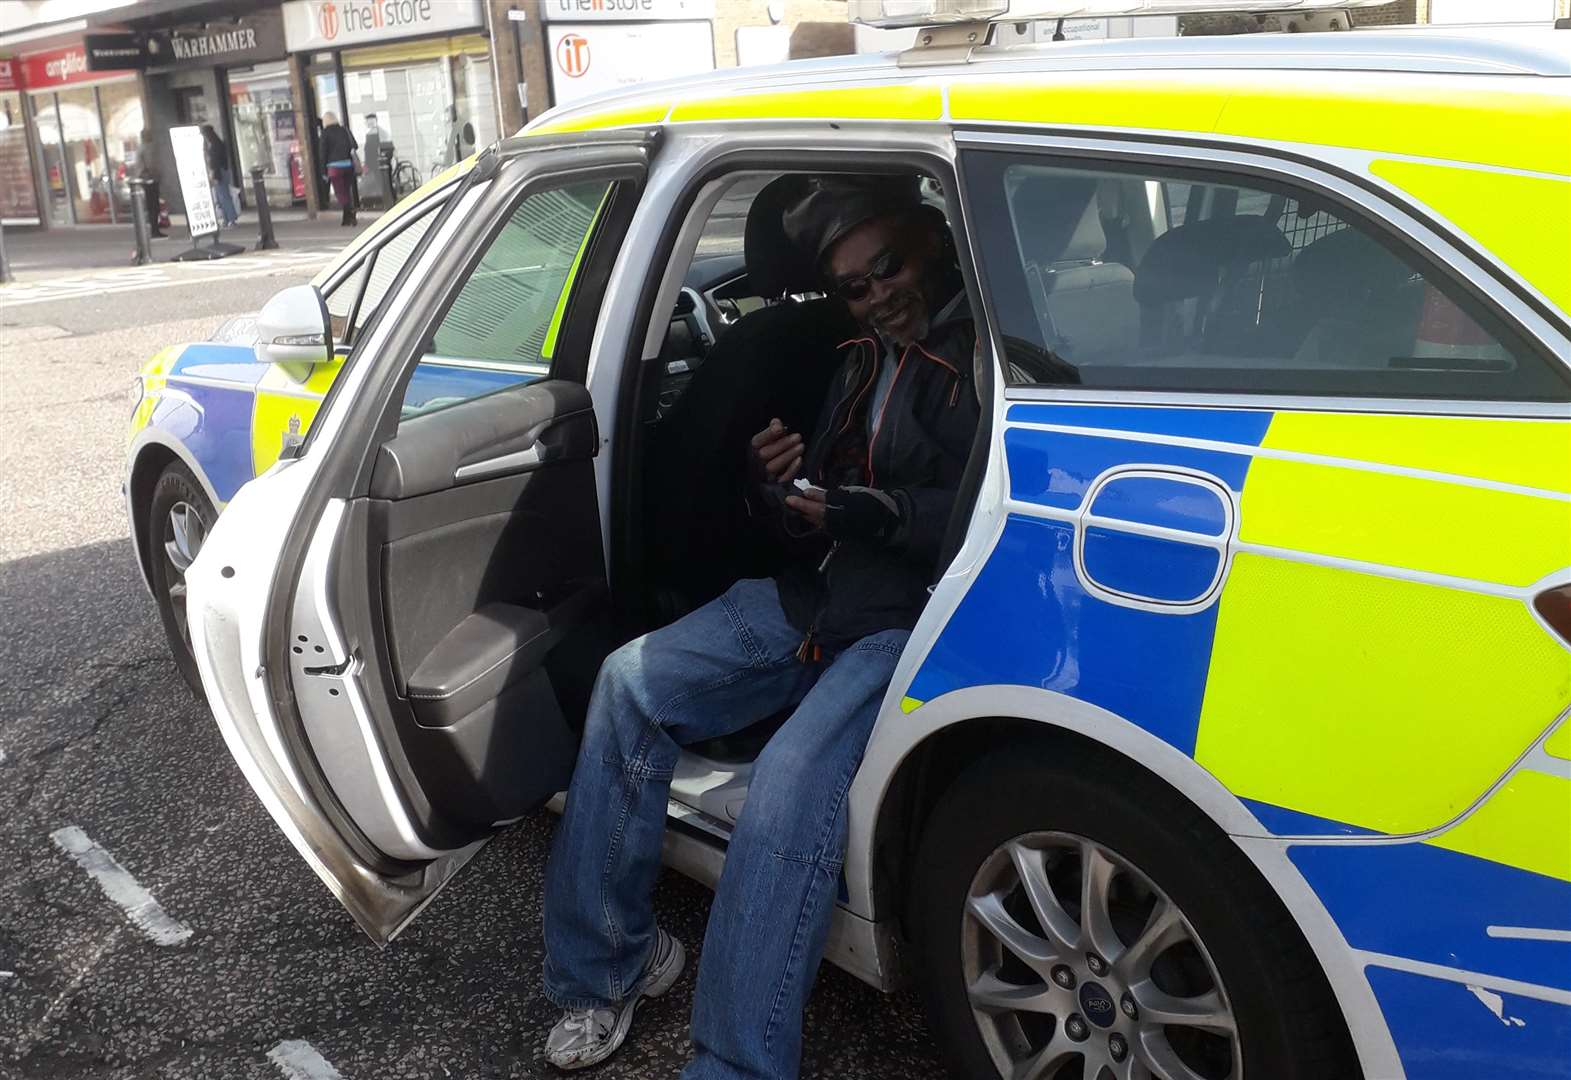 Man poses for pictures in unlocked police car